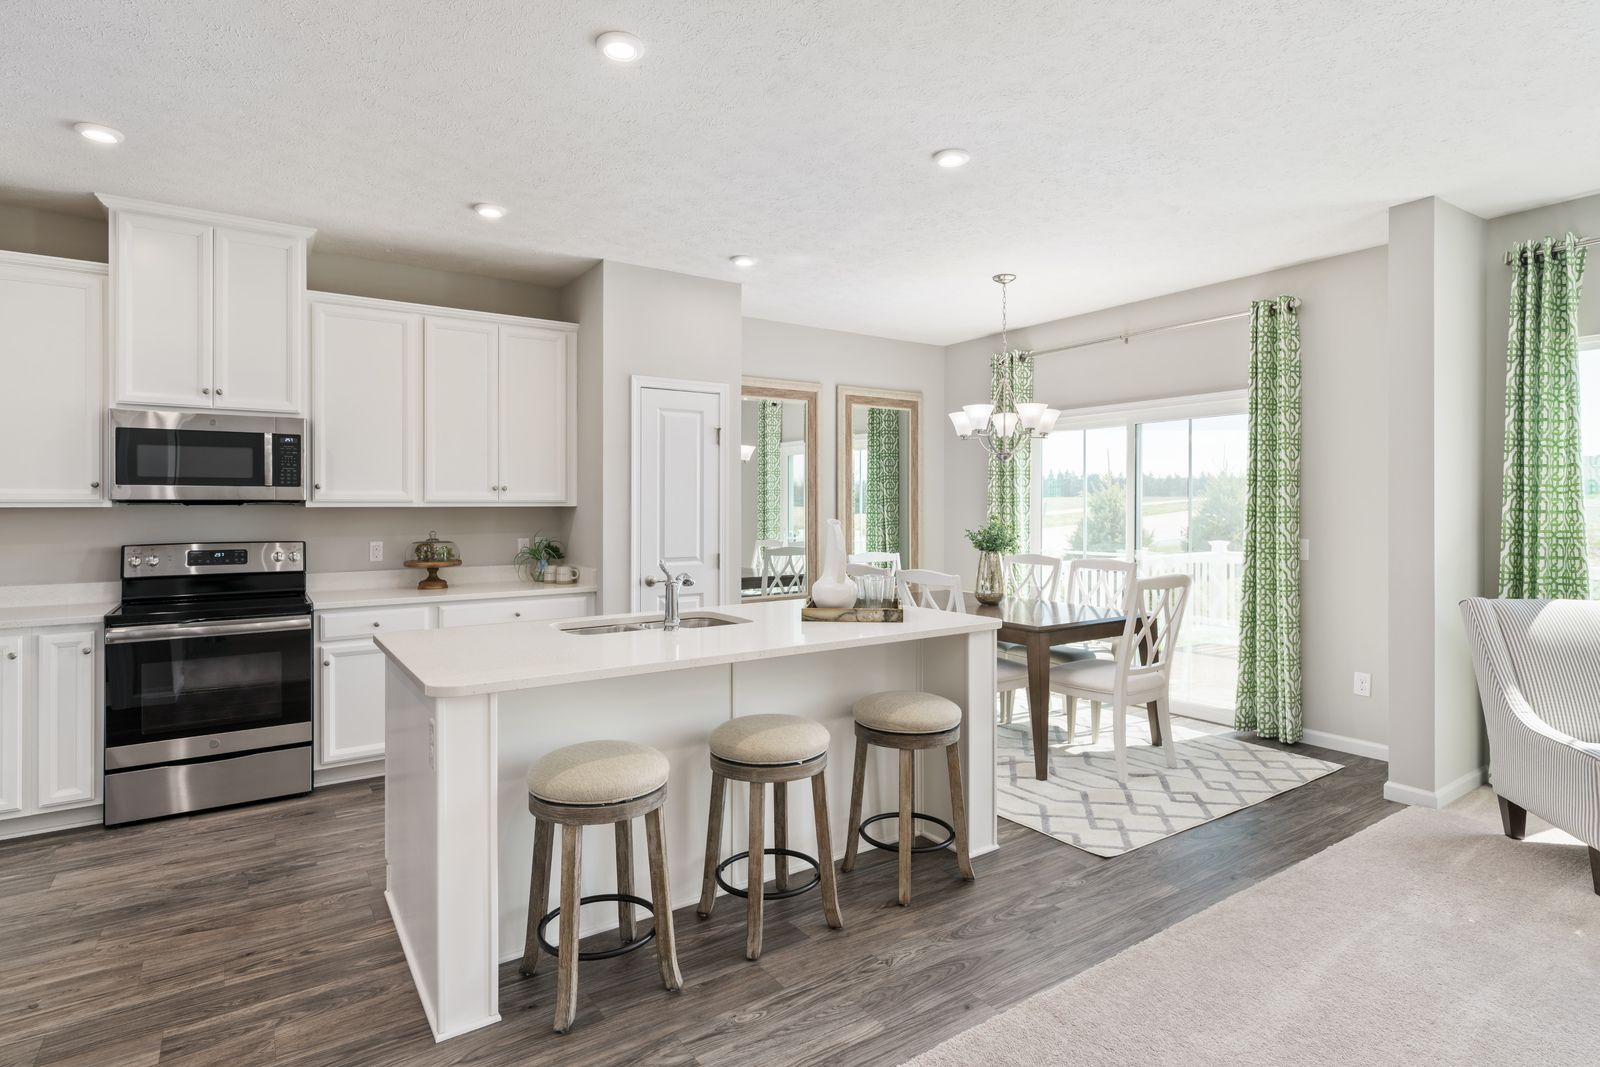 NEW TOWNHOMES COMING SUMMER 2021:Enjoy spacious 3-bedroom townhomes in a premier Montgomery location. For a great value, own a new 2-car garage slab townhome with community sports park, close to Rt. 47 & I-88.Join the VIP List!